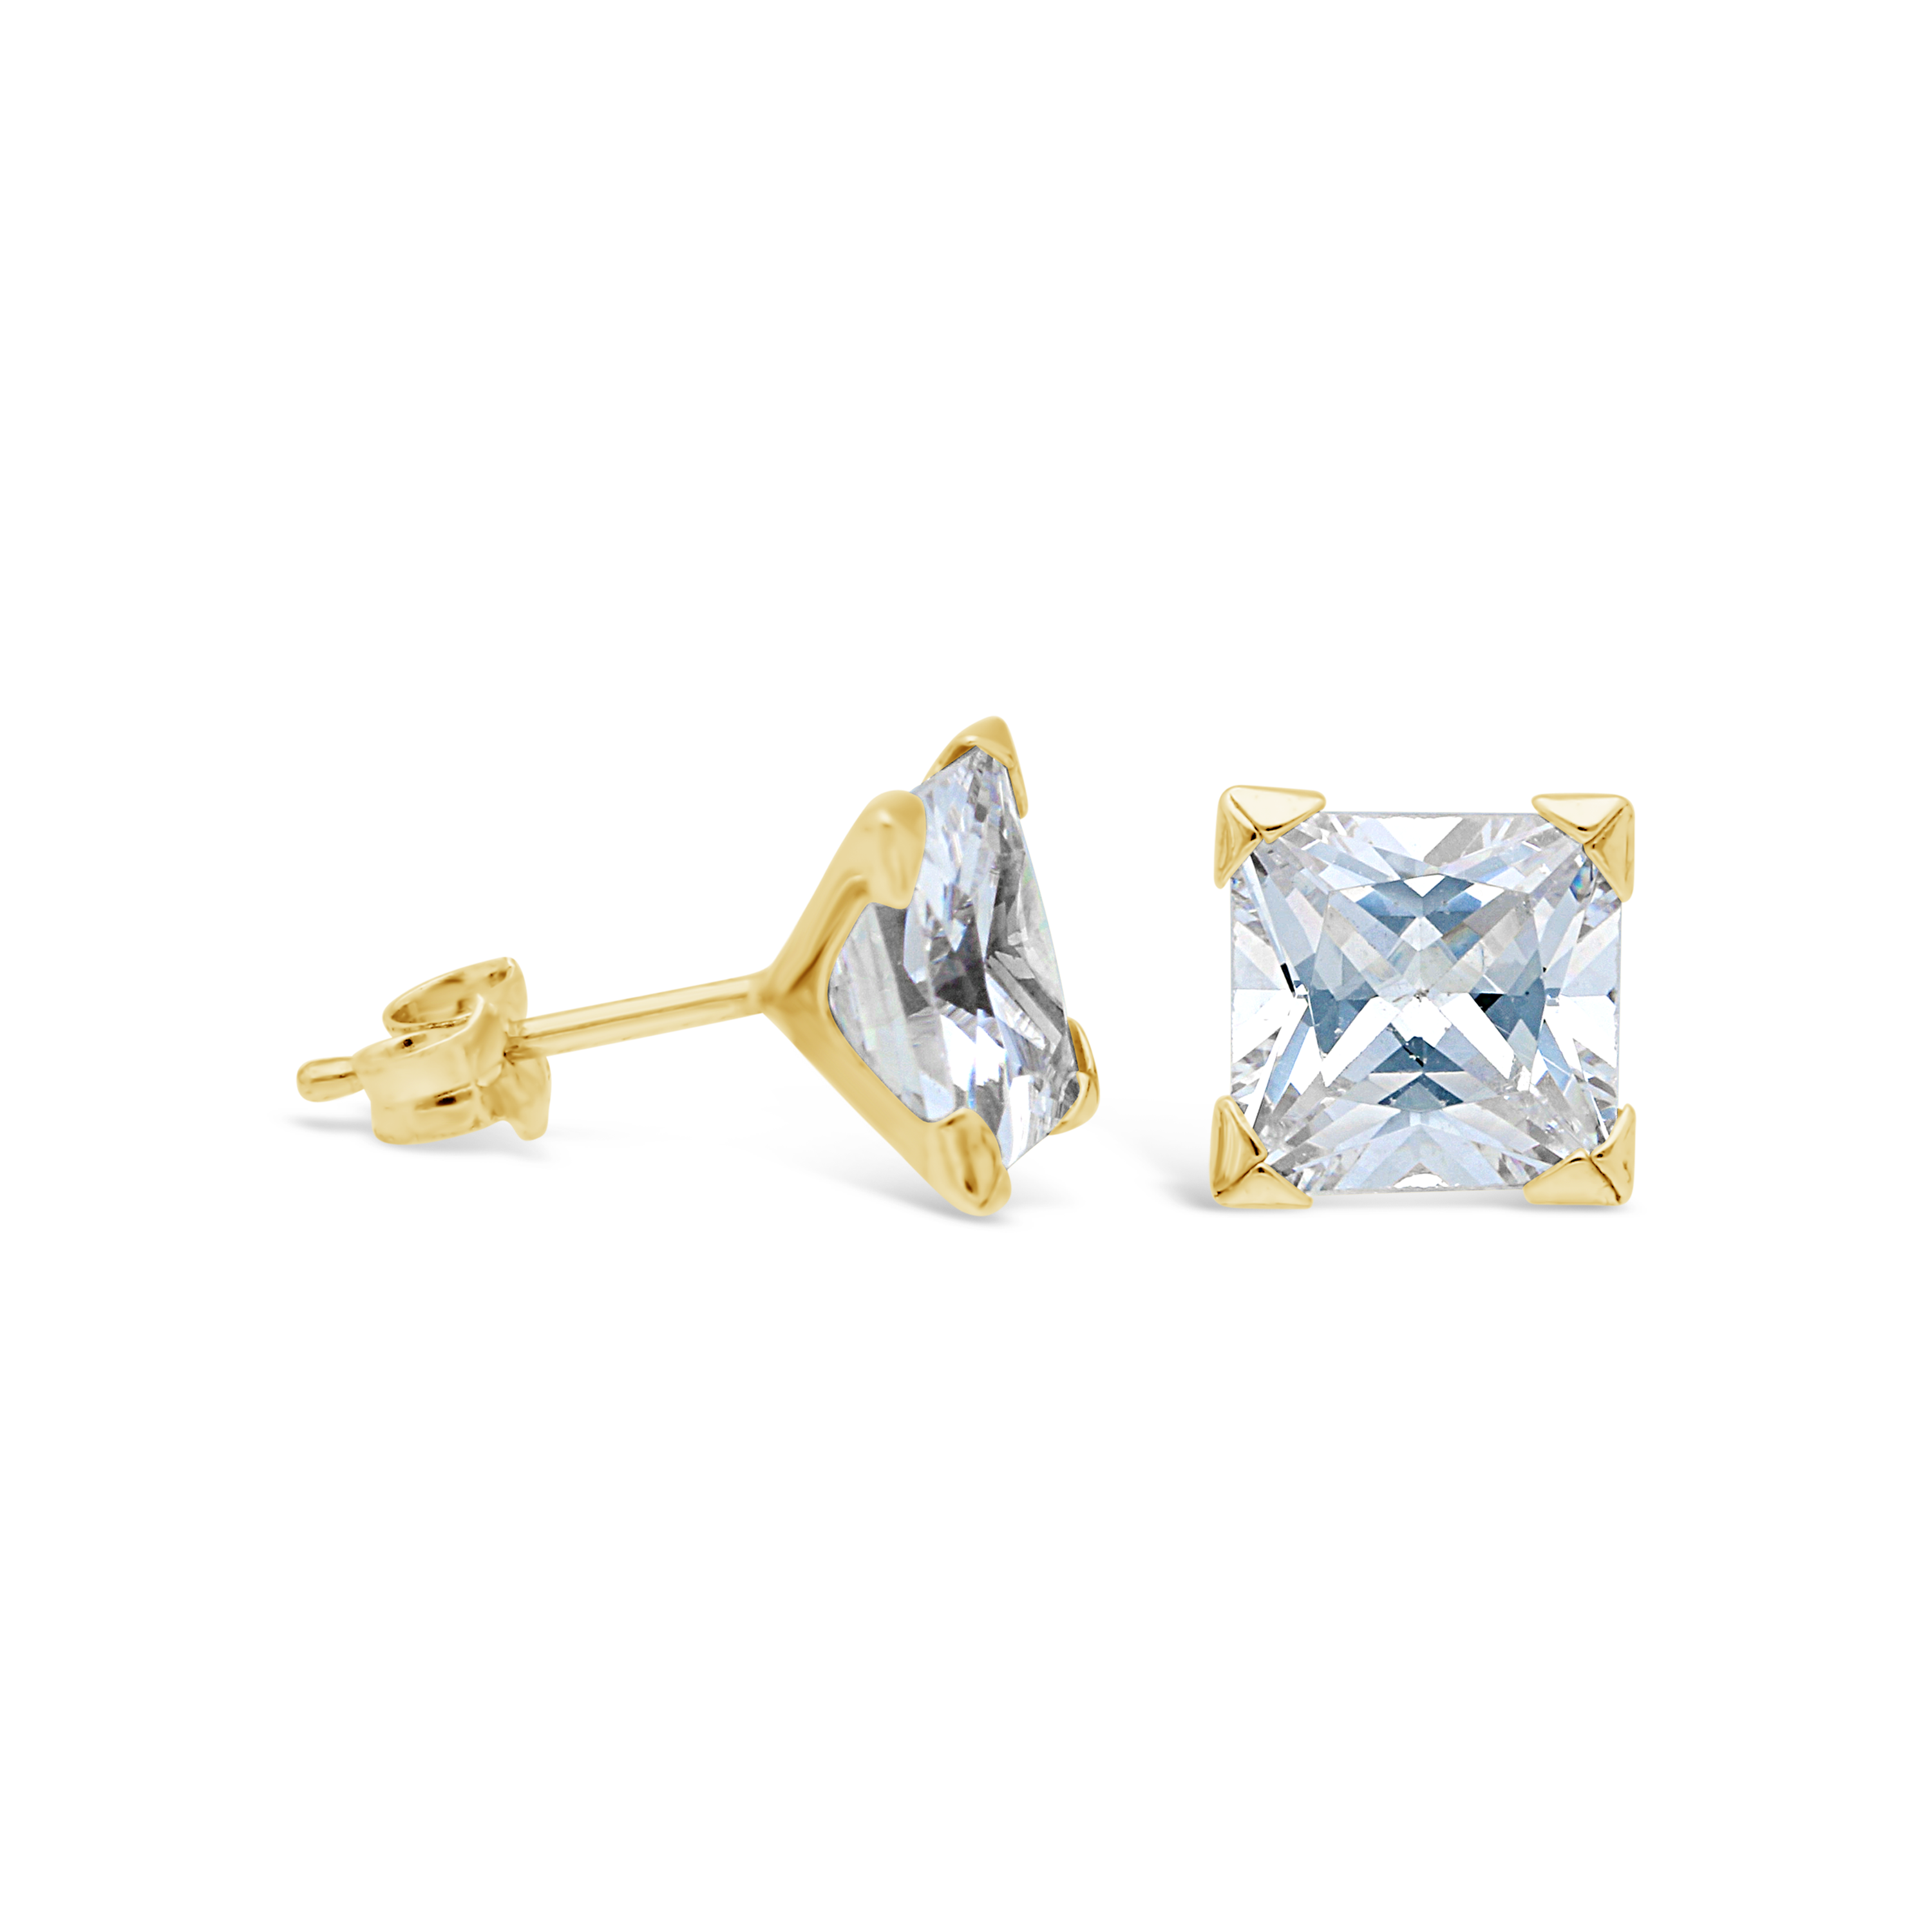 0eda889ff 9ct Gold 7mm Square Cubic Zirconia Stud Earrings - NWJ